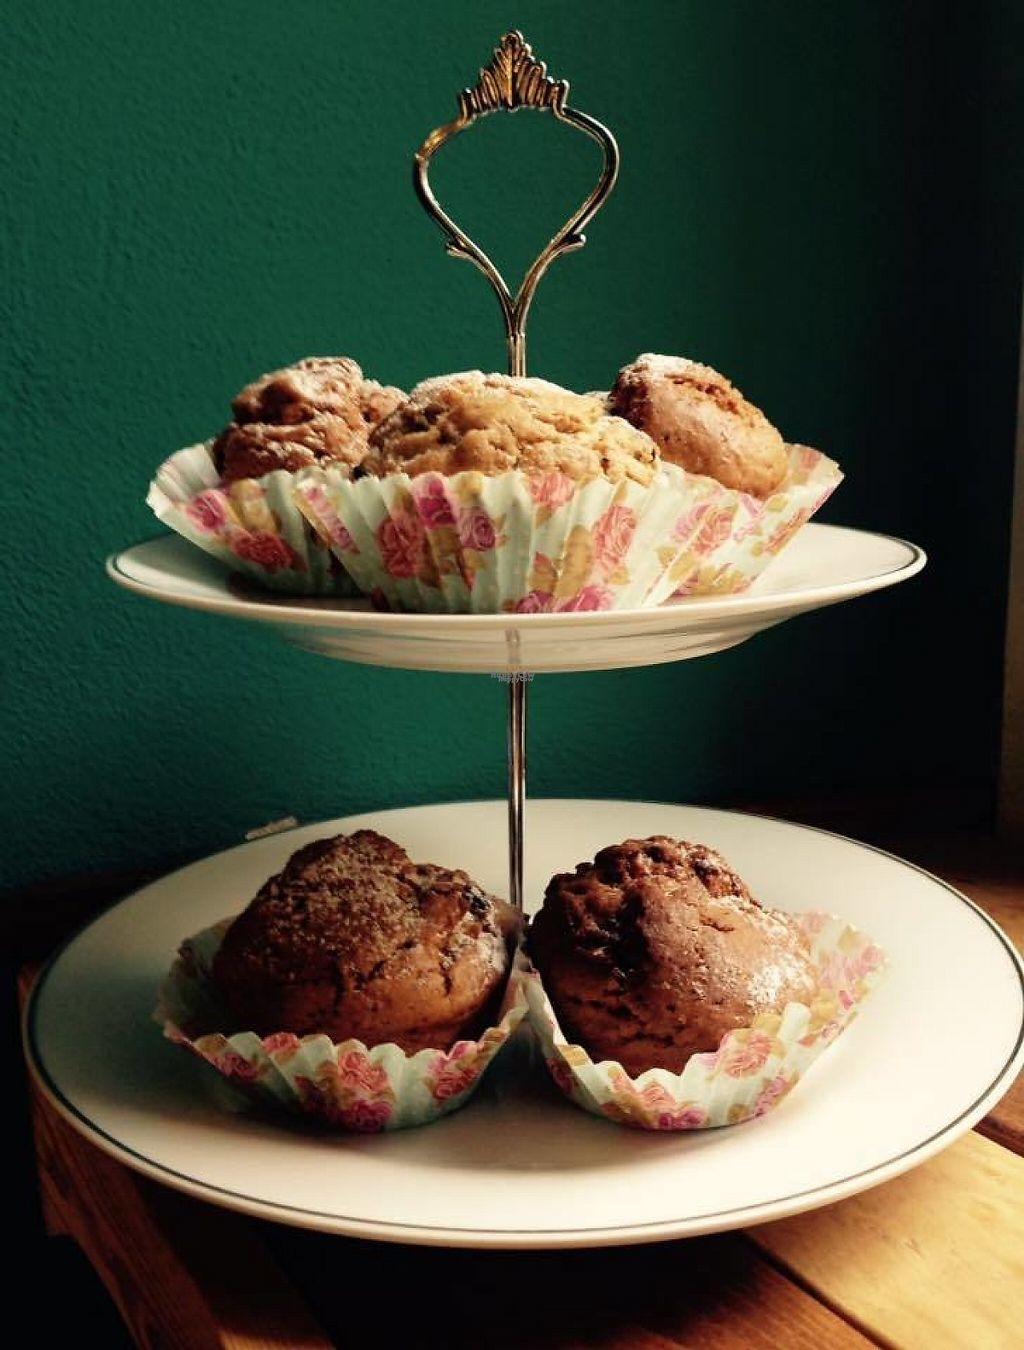 """Photo of La bottega di Kemi  by <a href=""""/members/profile/community"""">community</a> <br/>Vegan blueberry muffins <br/> January 25, 2017  - <a href='/contact/abuse/image/86036/216752'>Report</a>"""